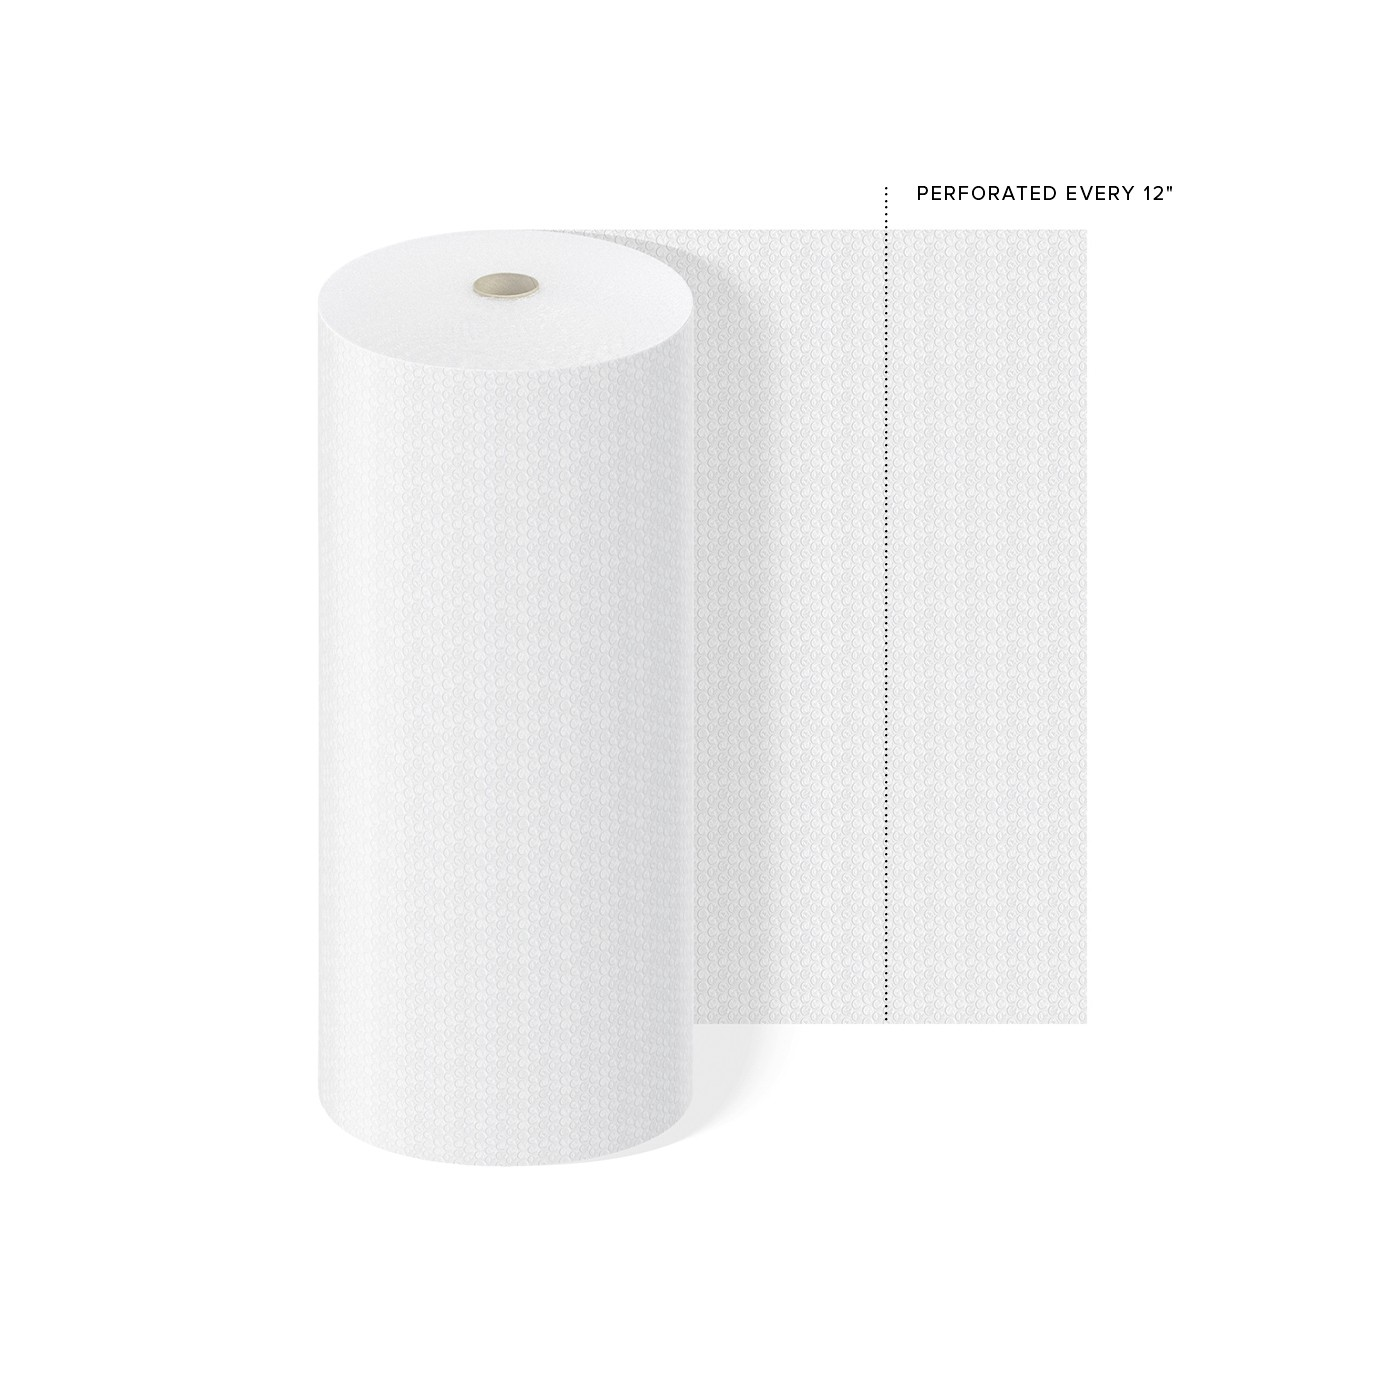 "TOTALPACK® 5/16"" x 48"" x 188' Perforated Every 12"", Air Bubble 1 Roll"